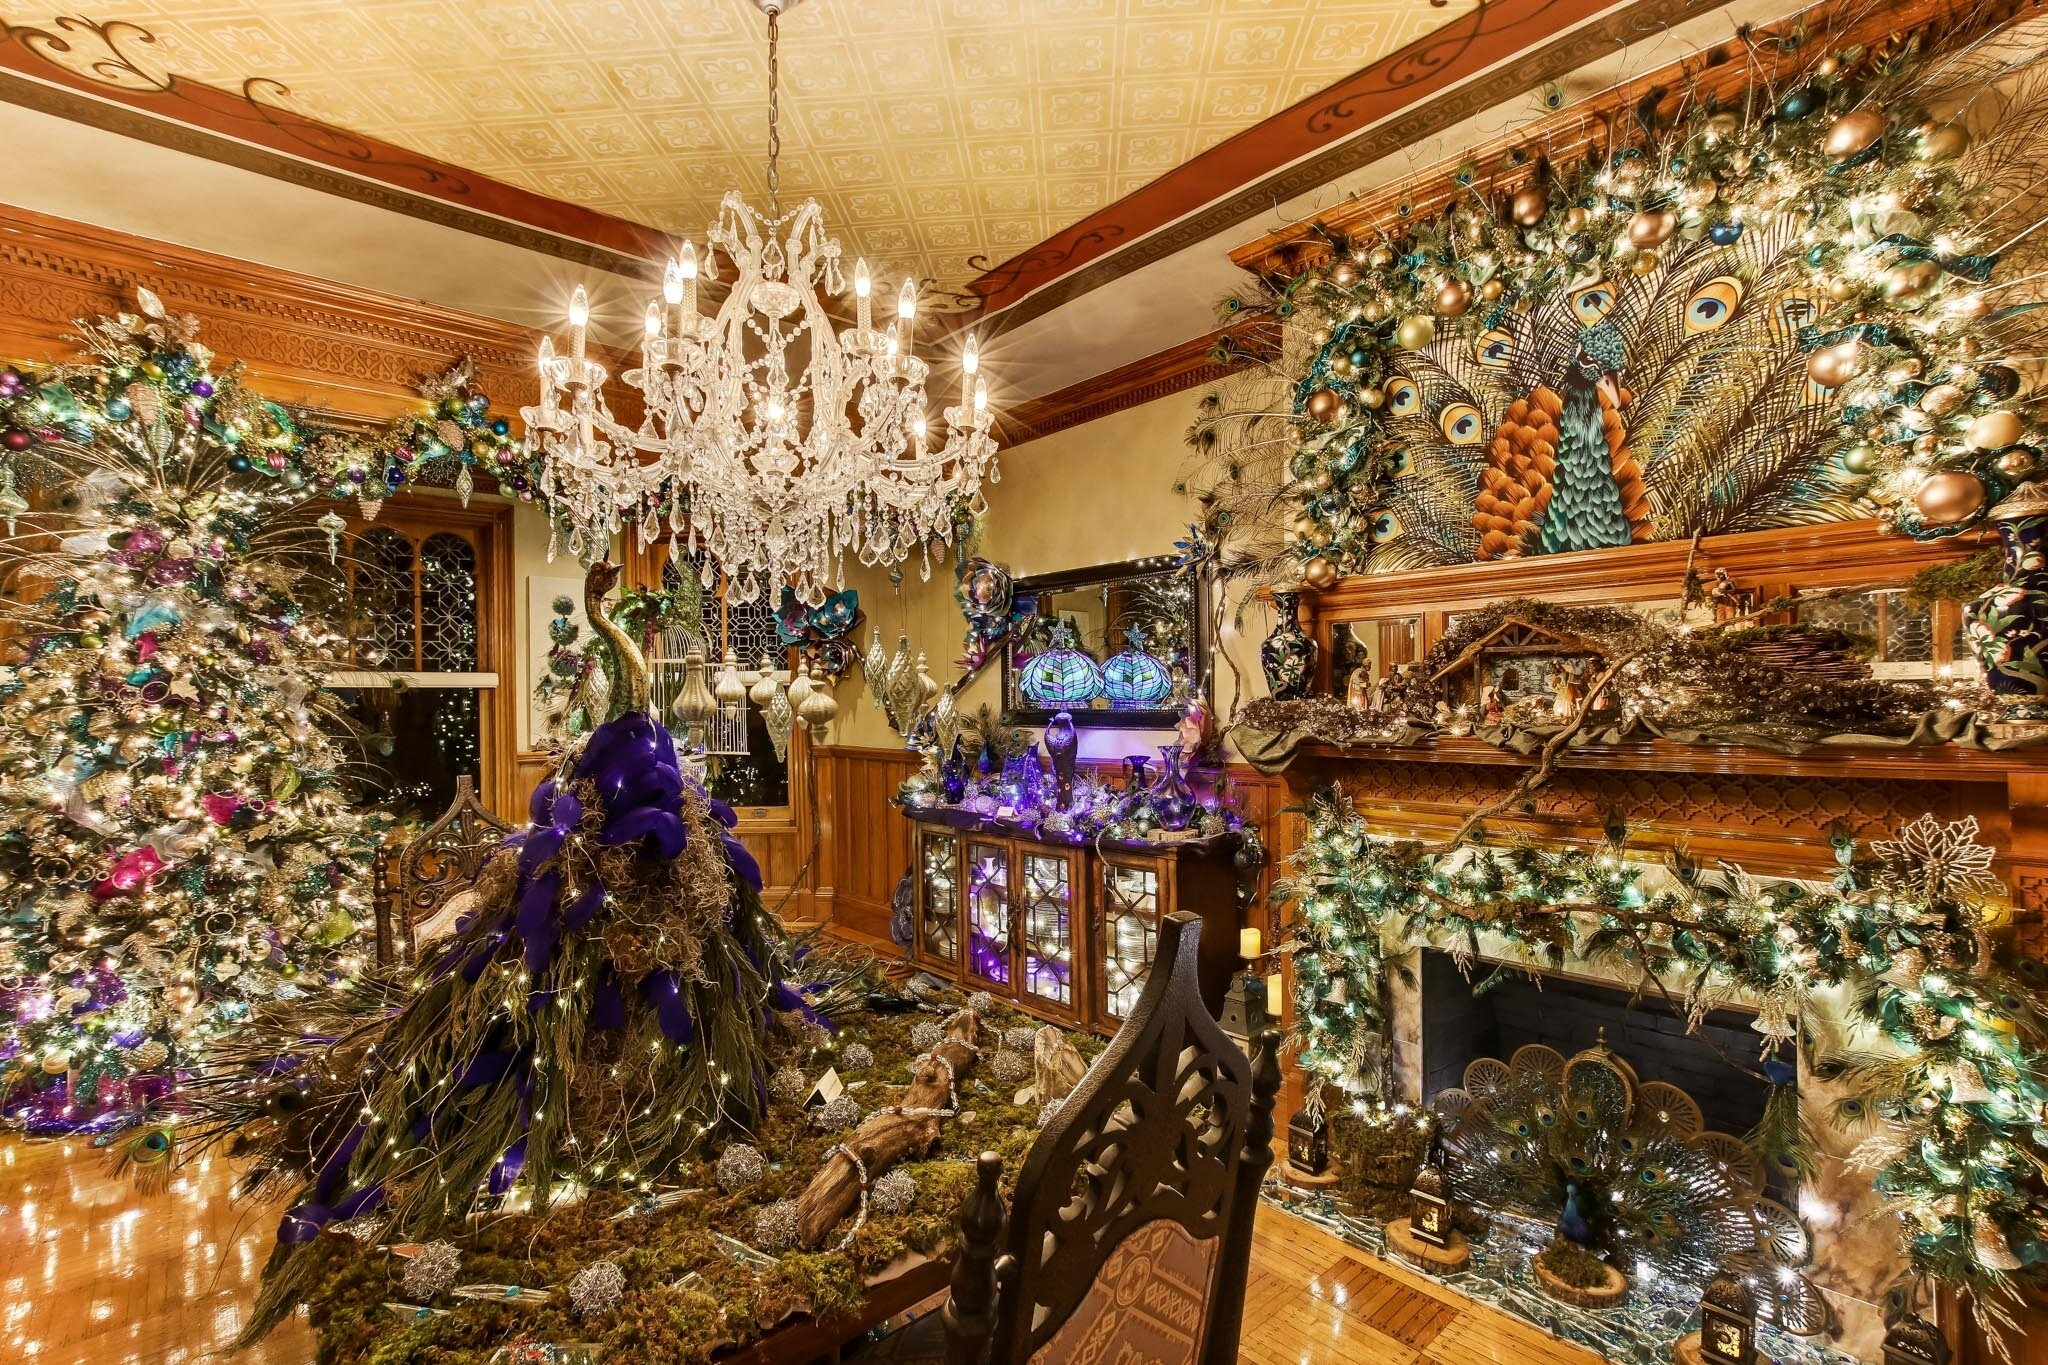 Stetson Mansion Christmas Spectacular 2021 Christmas Spectacular Tours Nov 1 Jan 22 The Stetson Mansion